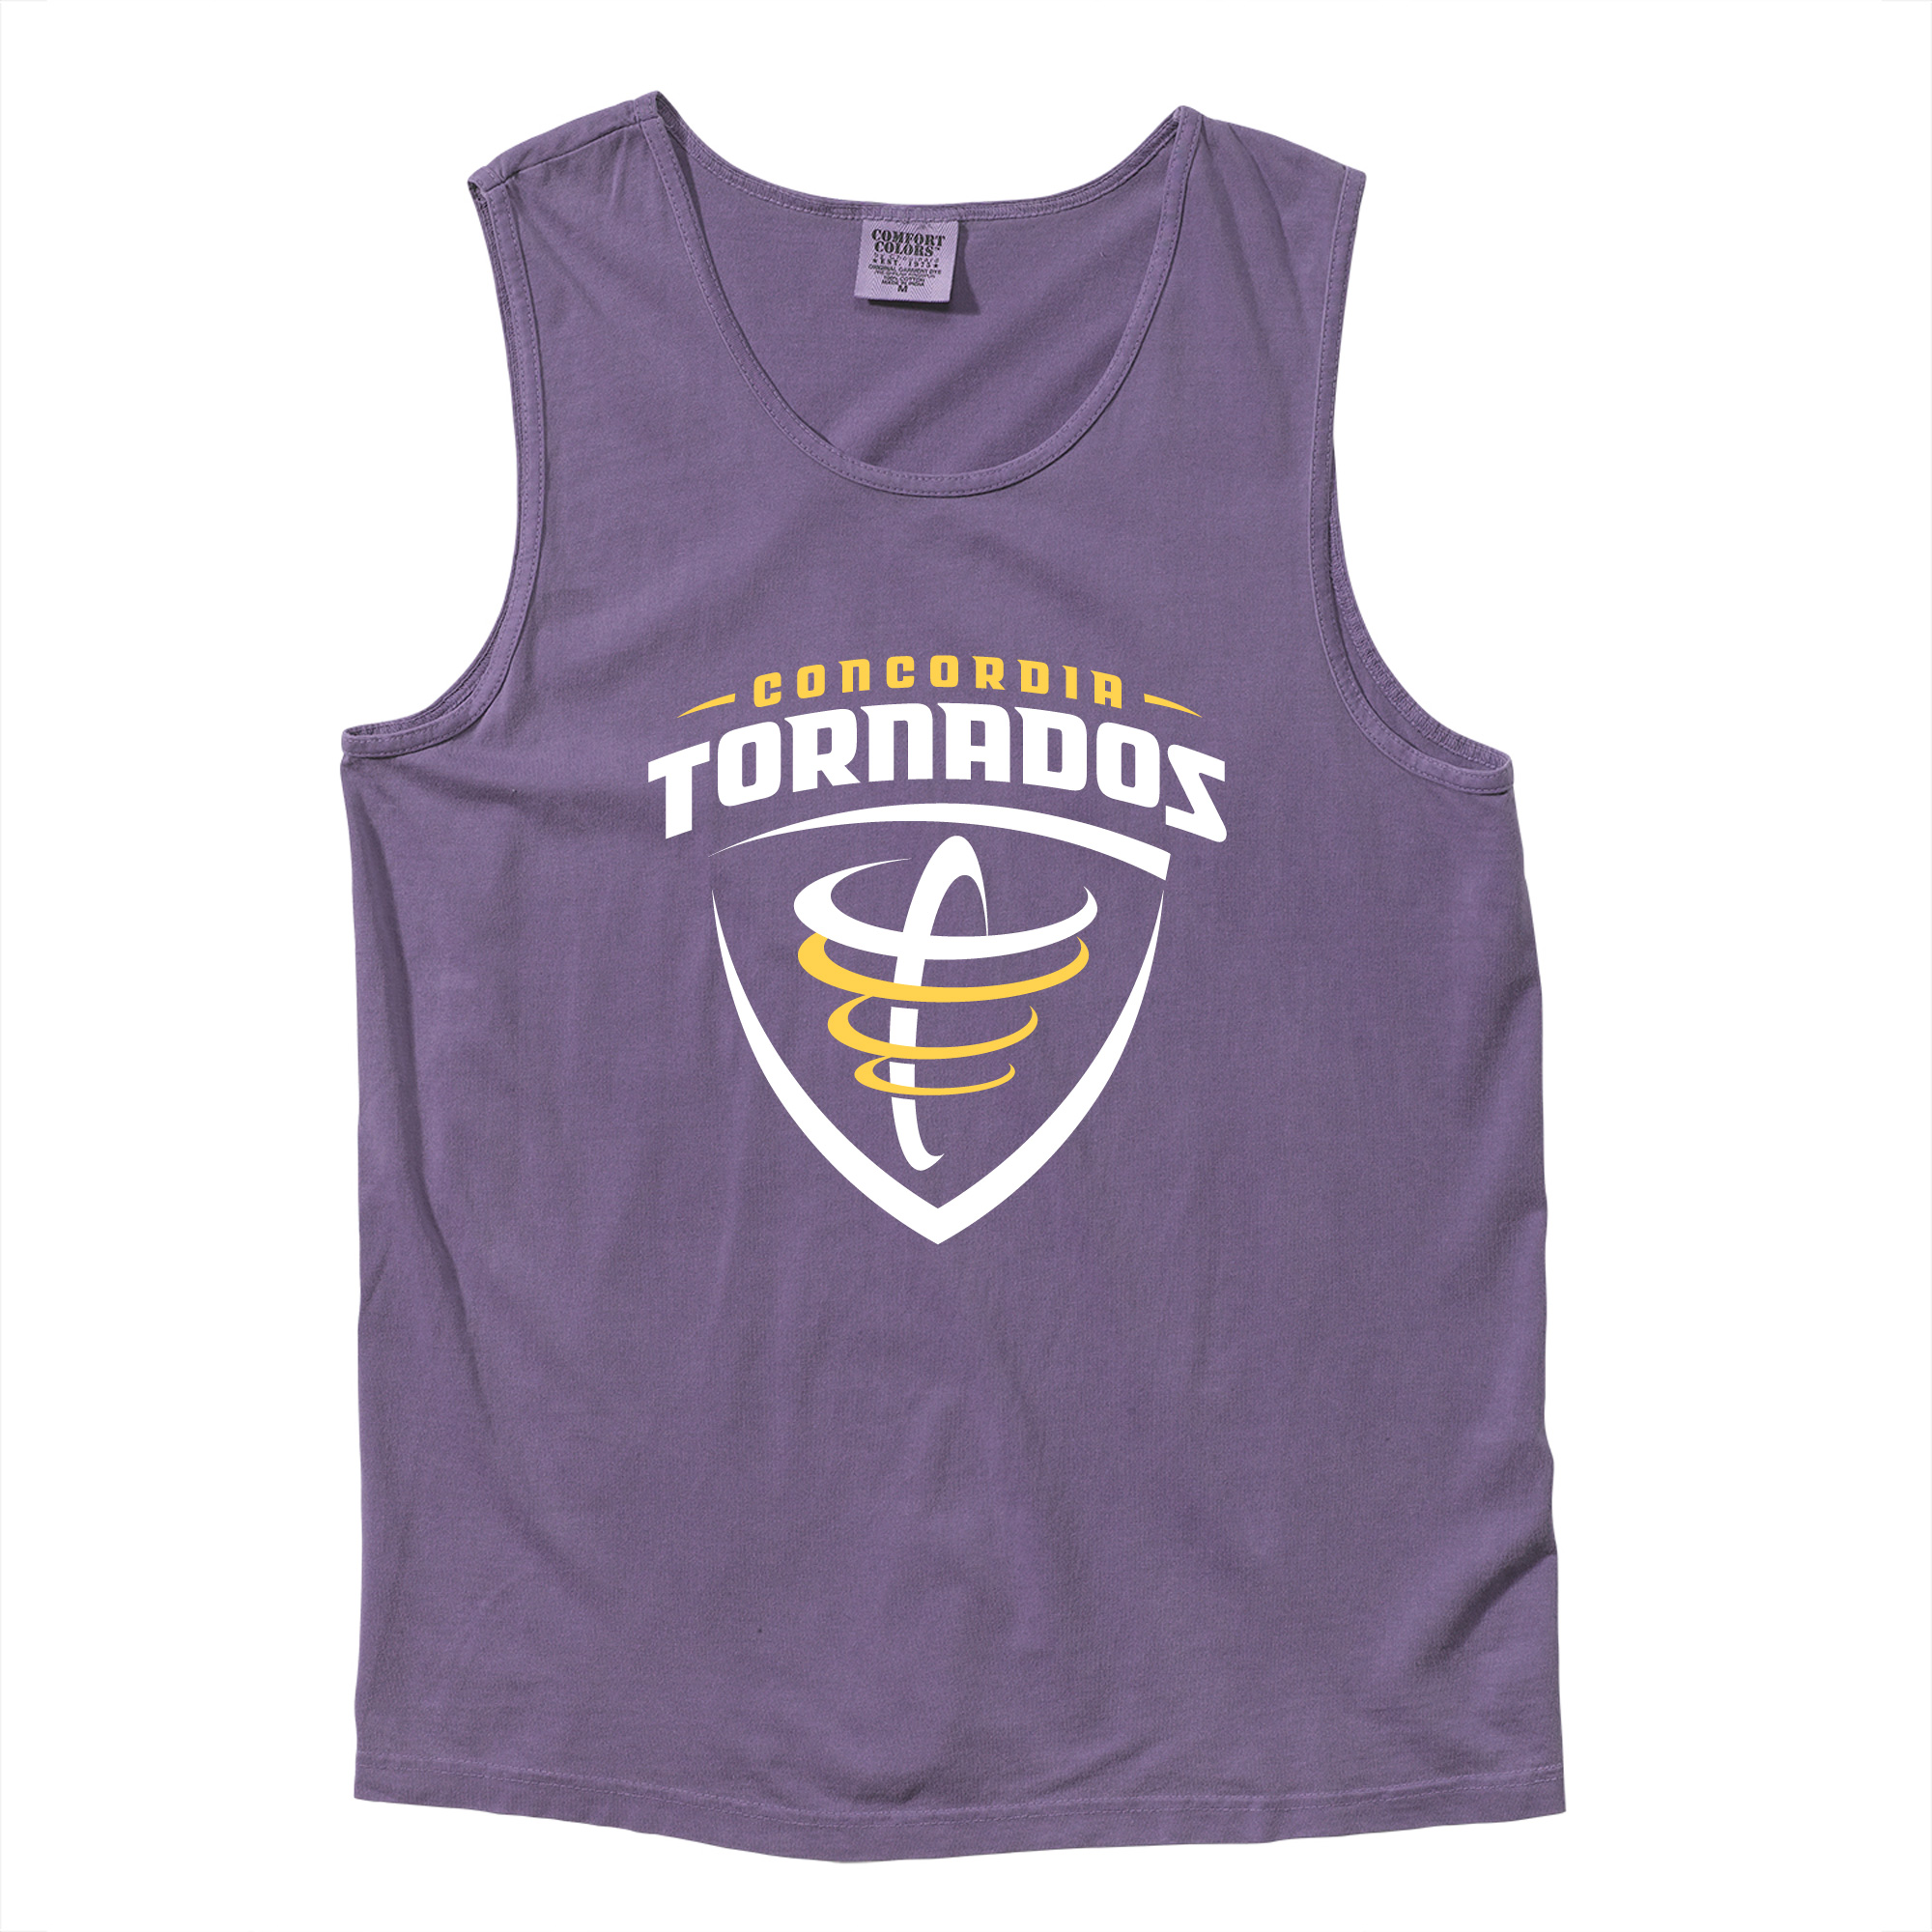 Comfort Colours Tank Top - Violet